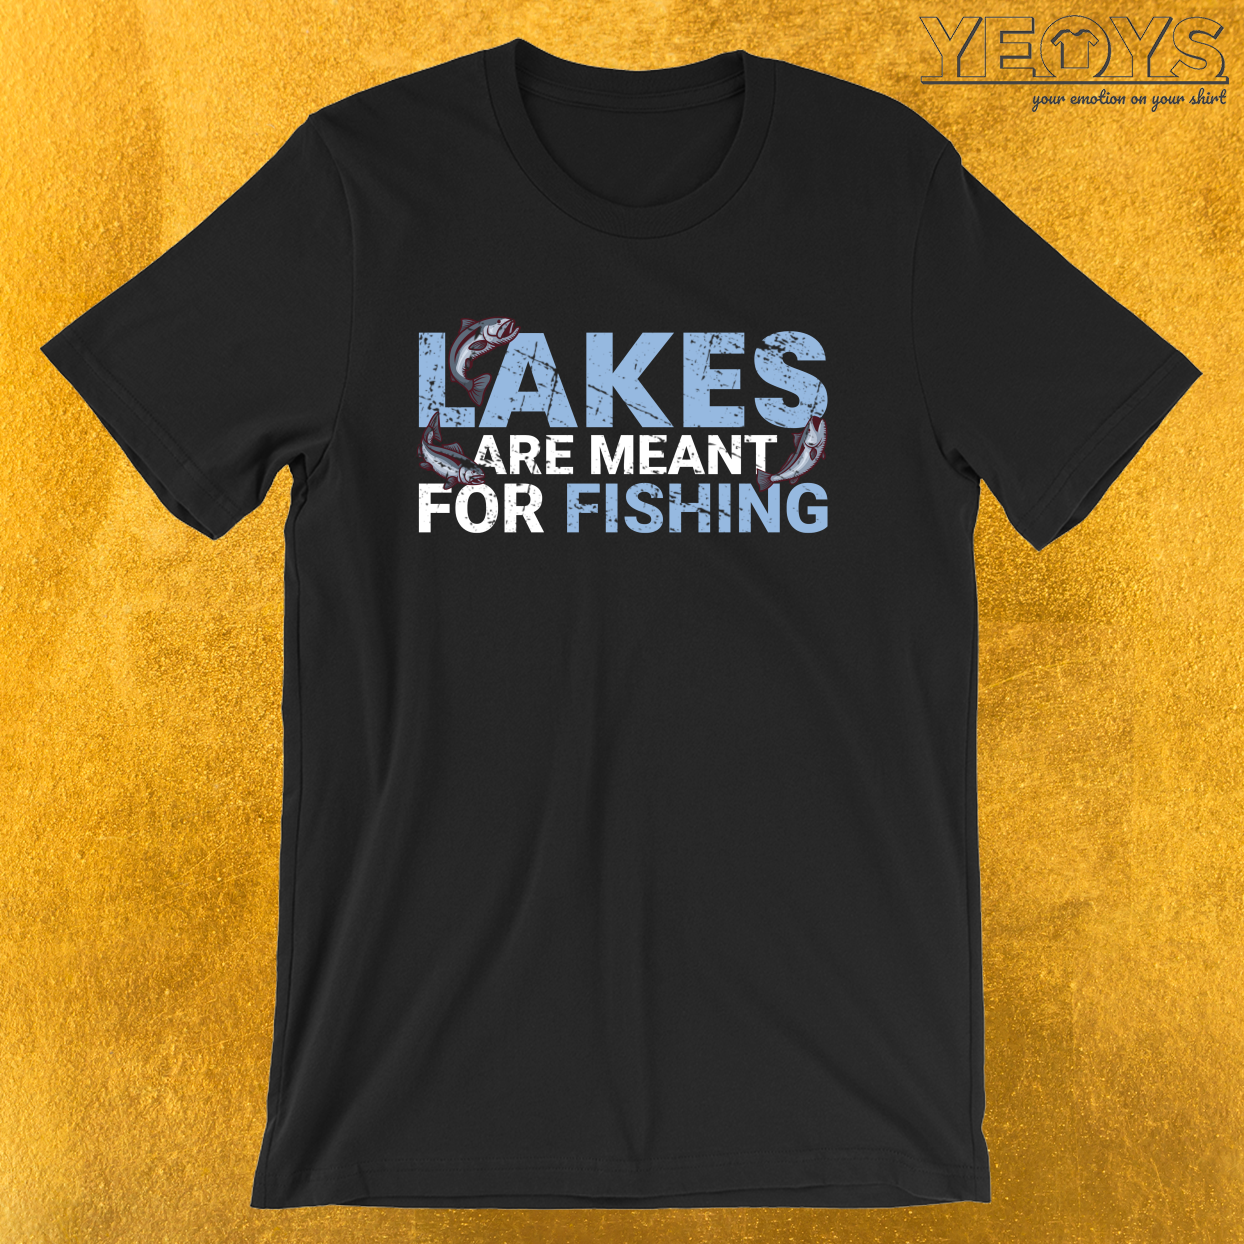 Lakes Are Meant For Fishing – Funny Fishing Tee